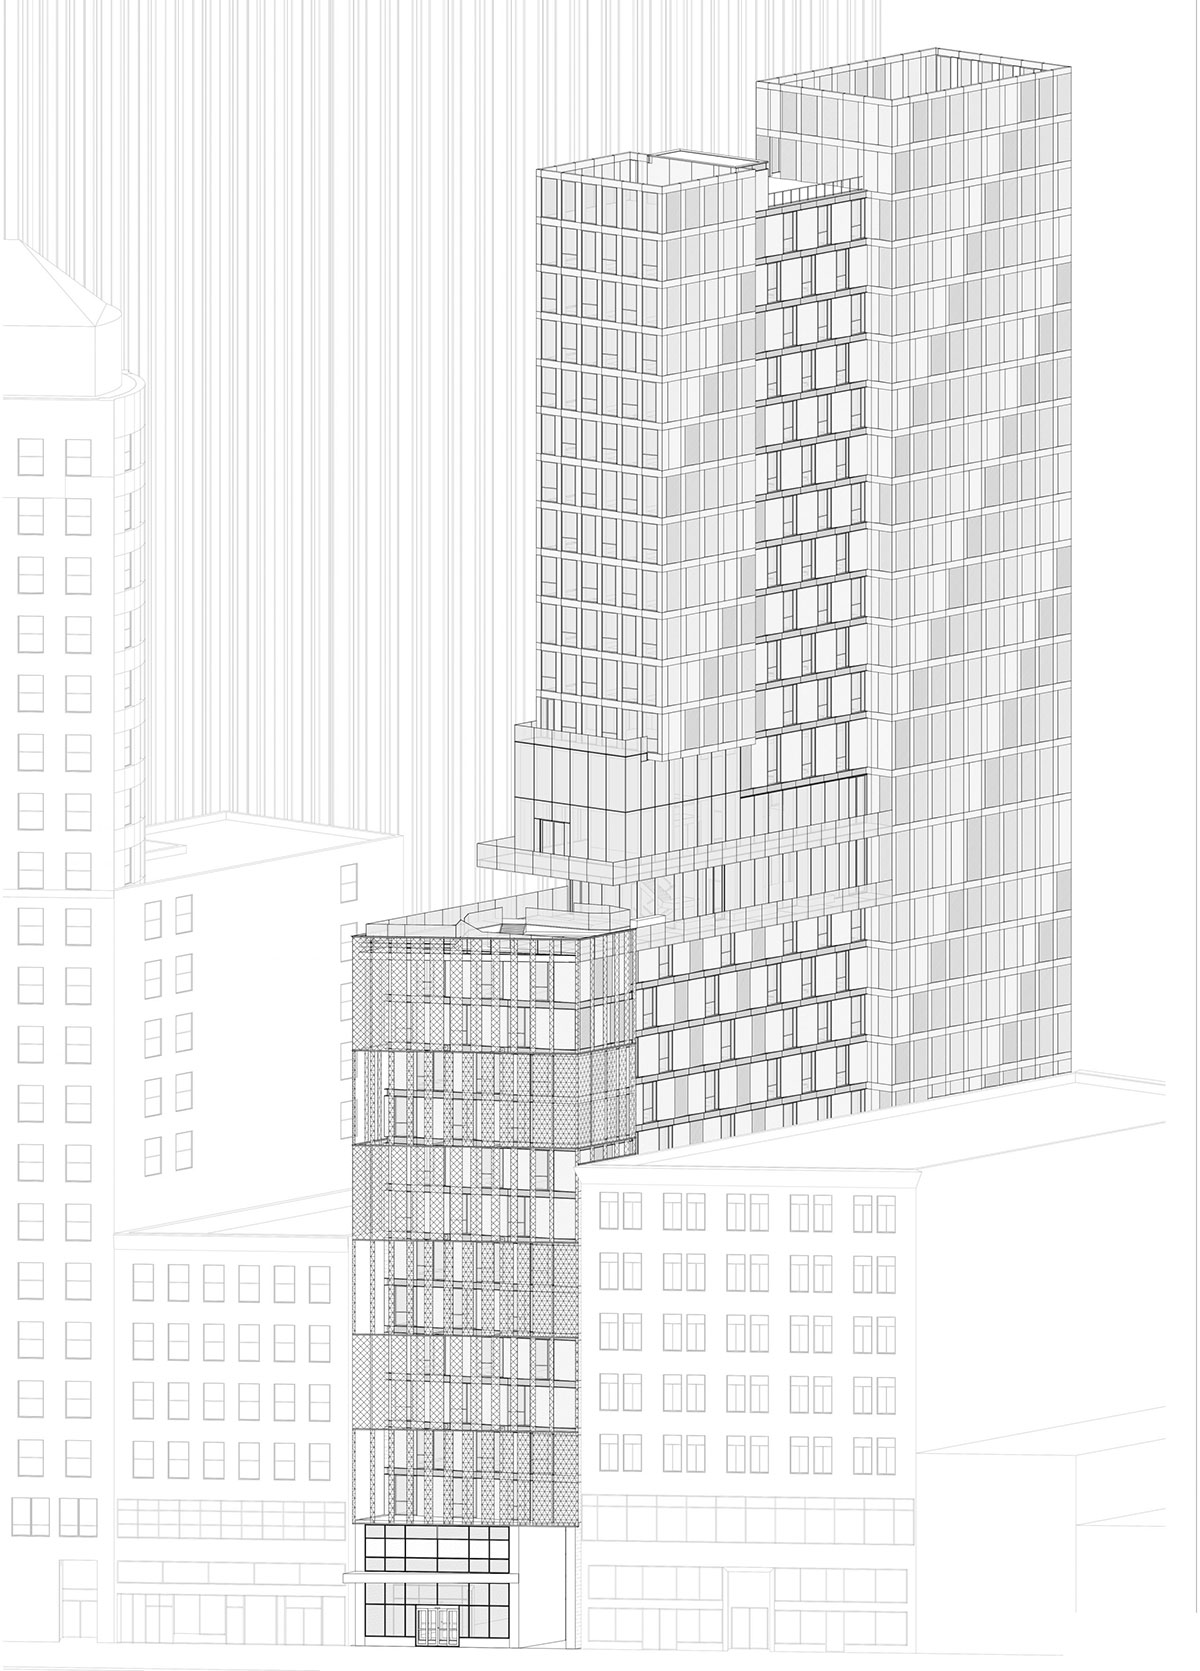 Axonometric view of the San Francisco modular project located at 570 Market Street on the Financial District of San Francisco, California designed by the architecture studio Danny Forster & Architecture